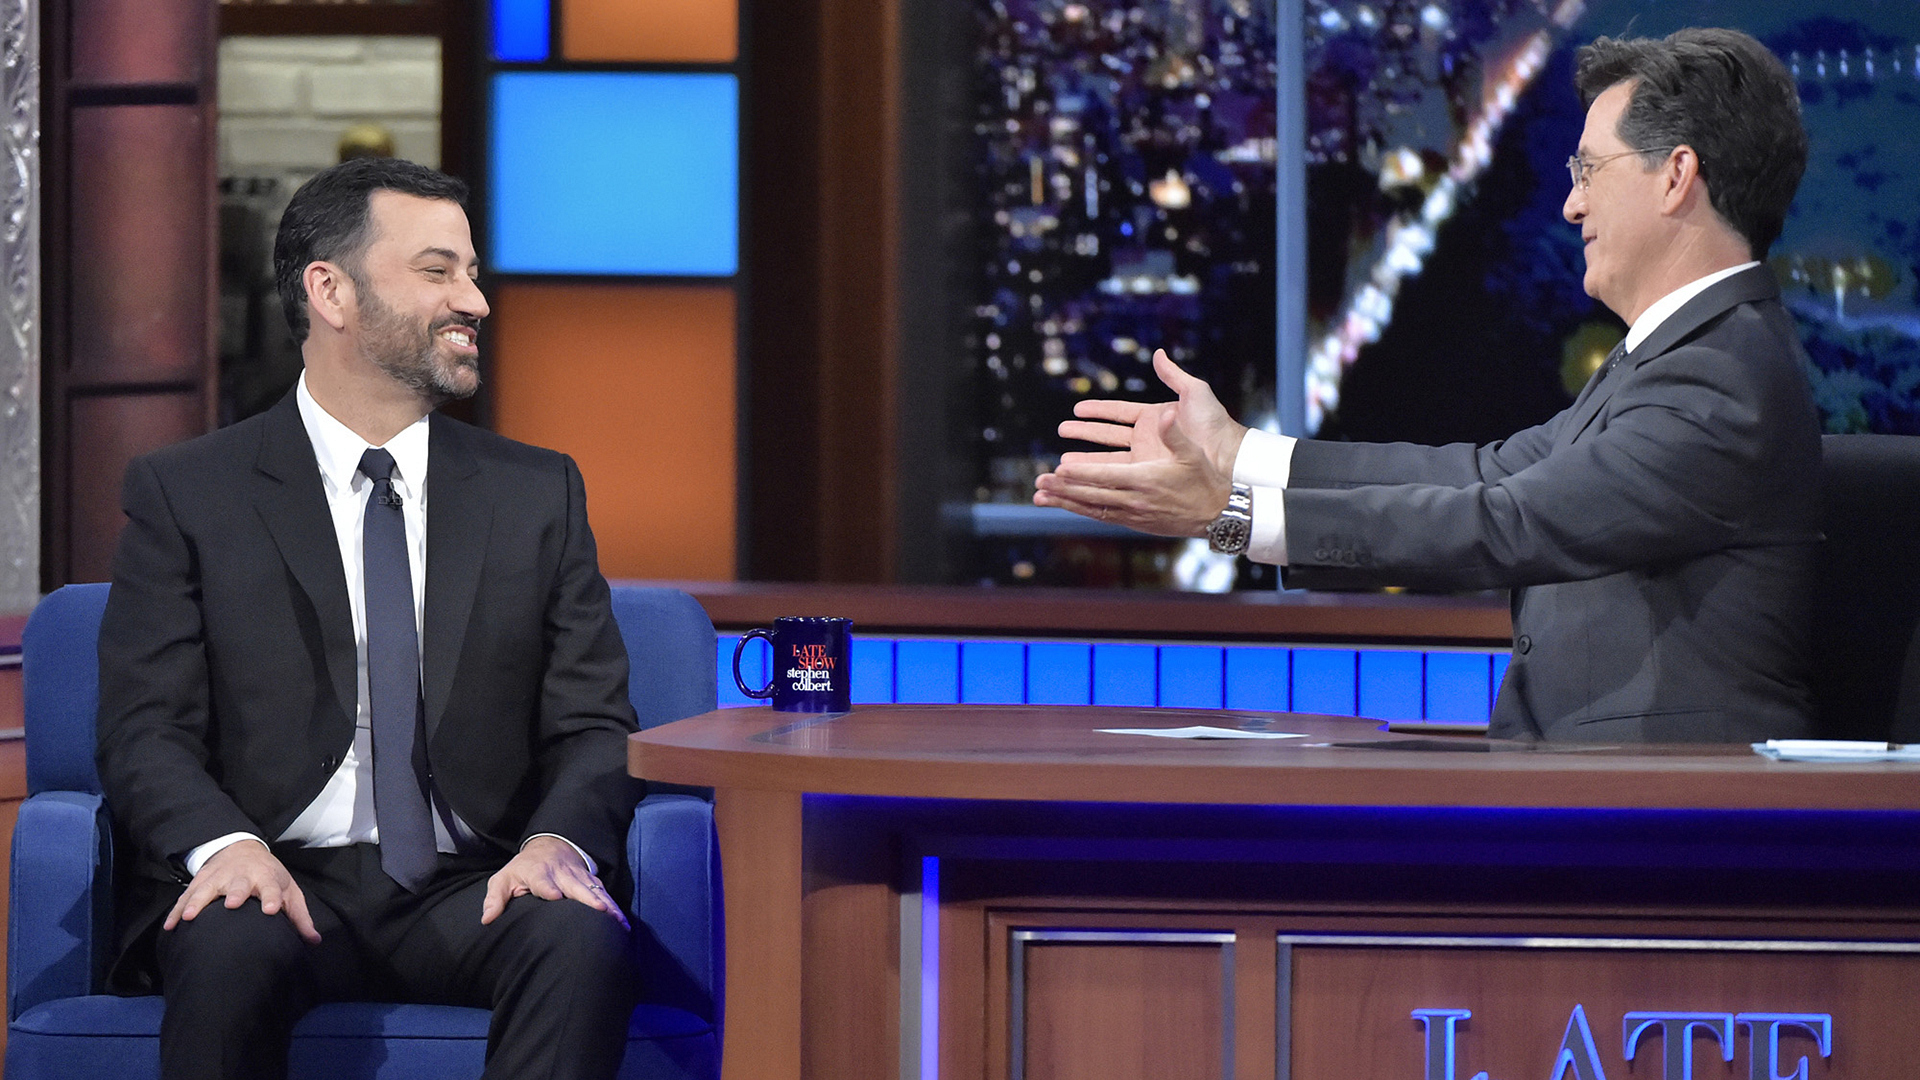 Jimmy Kimmel and Stephen Colbert